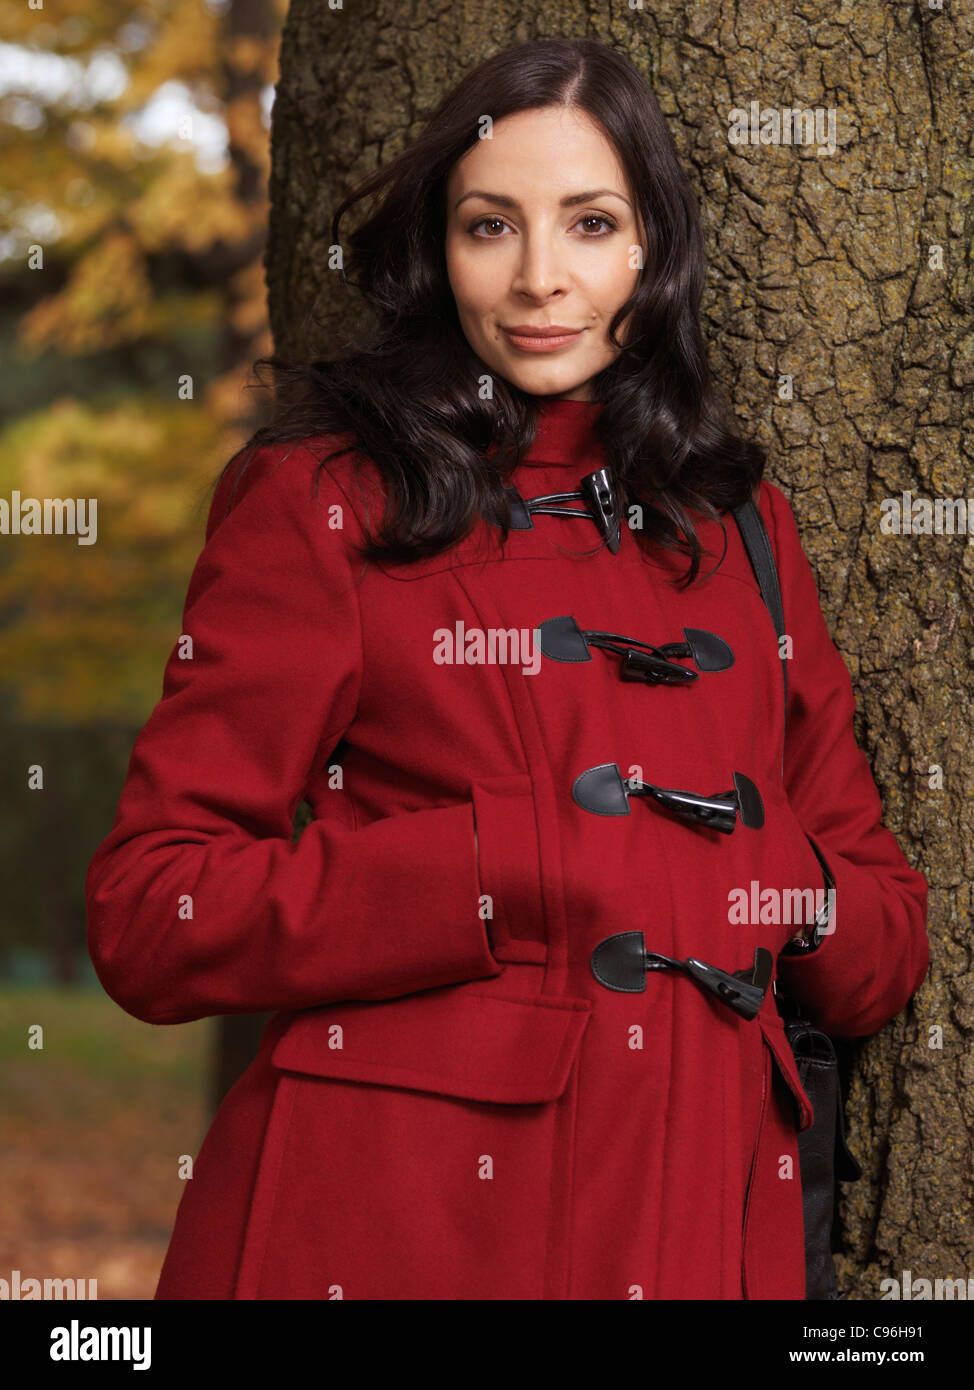 Portrait of a beautiful woman in red fashionable coat leaning against a tree - Stock Image